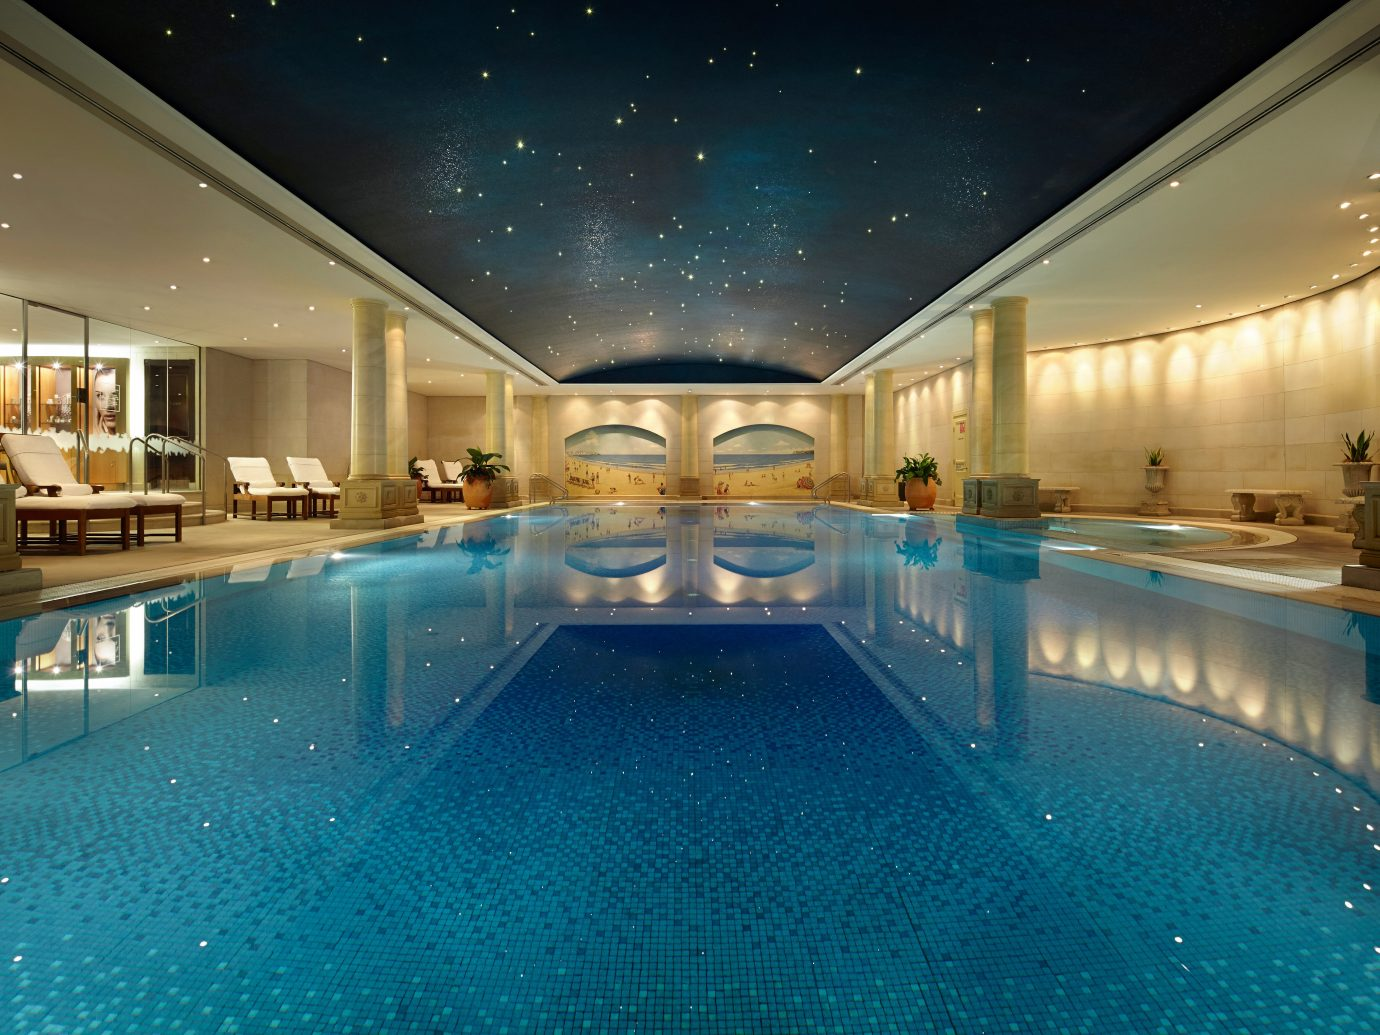 All-Inclusive Resorts Boutique Hotels Elegant Hot tub Hot tub/Jacuzzi Hotels Luxury Play Pool Resort Romance indoor ceiling swimming pool leisure centre estate blue thermae